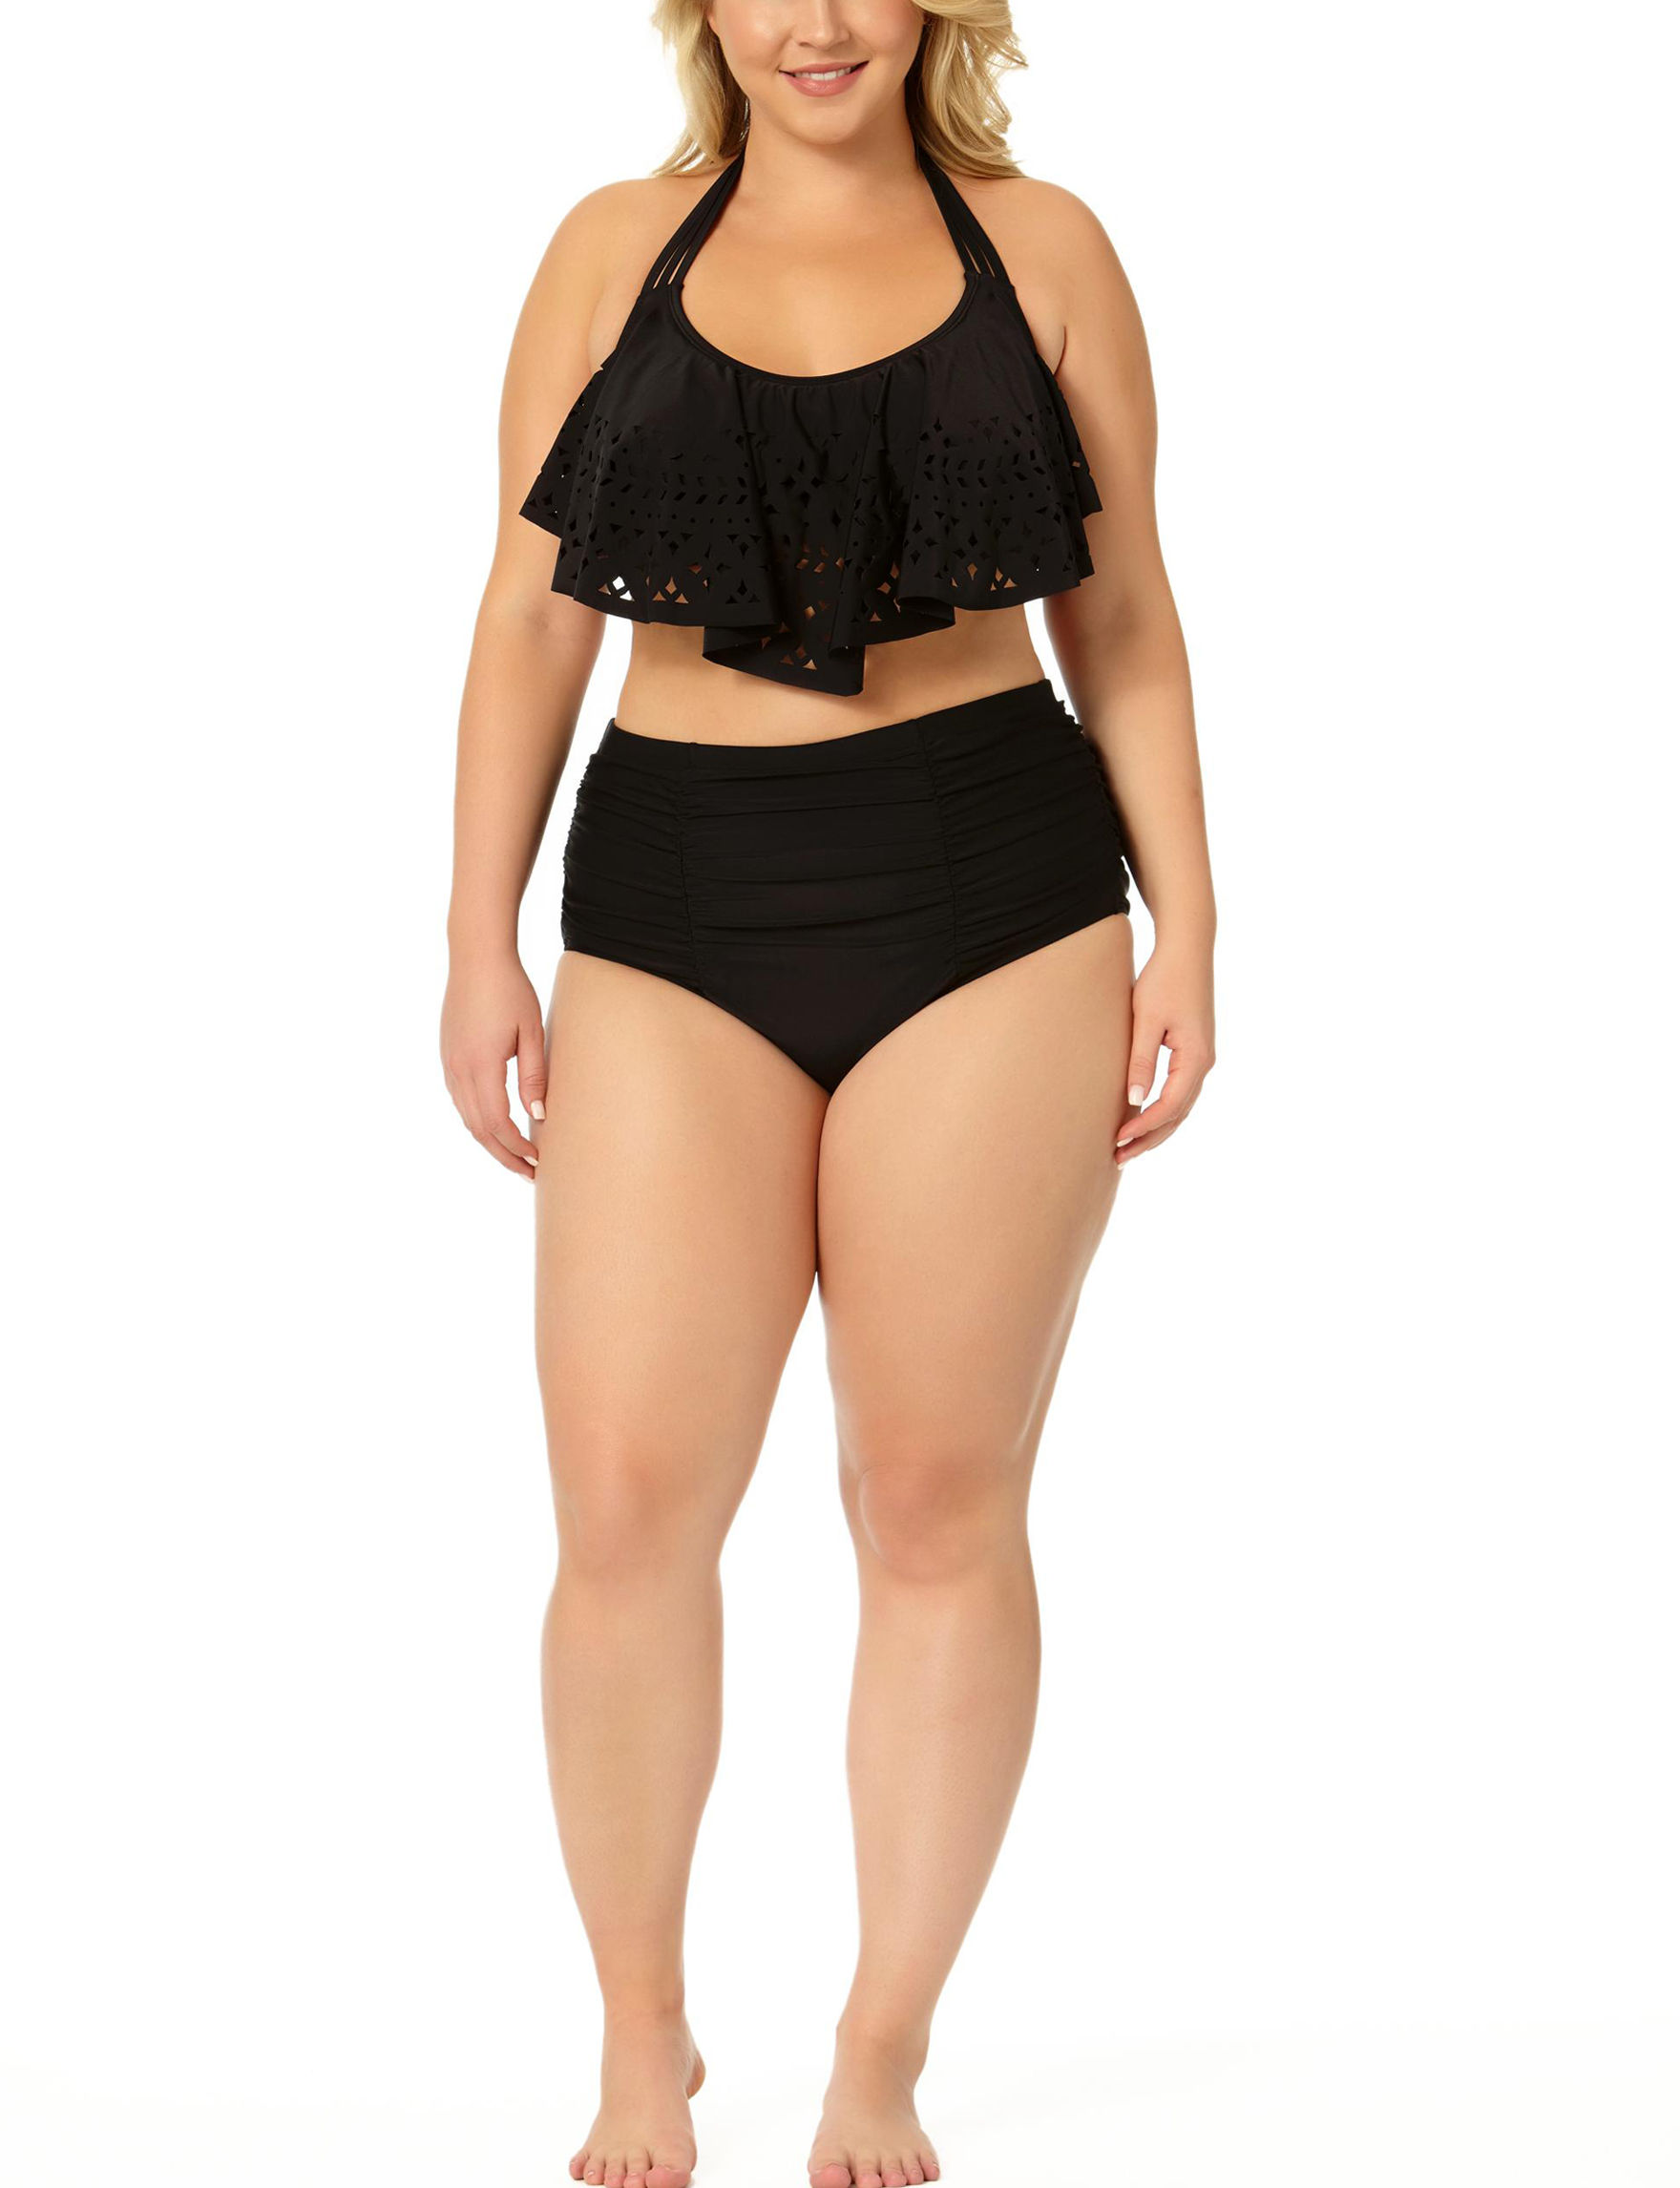 Allure Black Swimsuit Tops Bralette